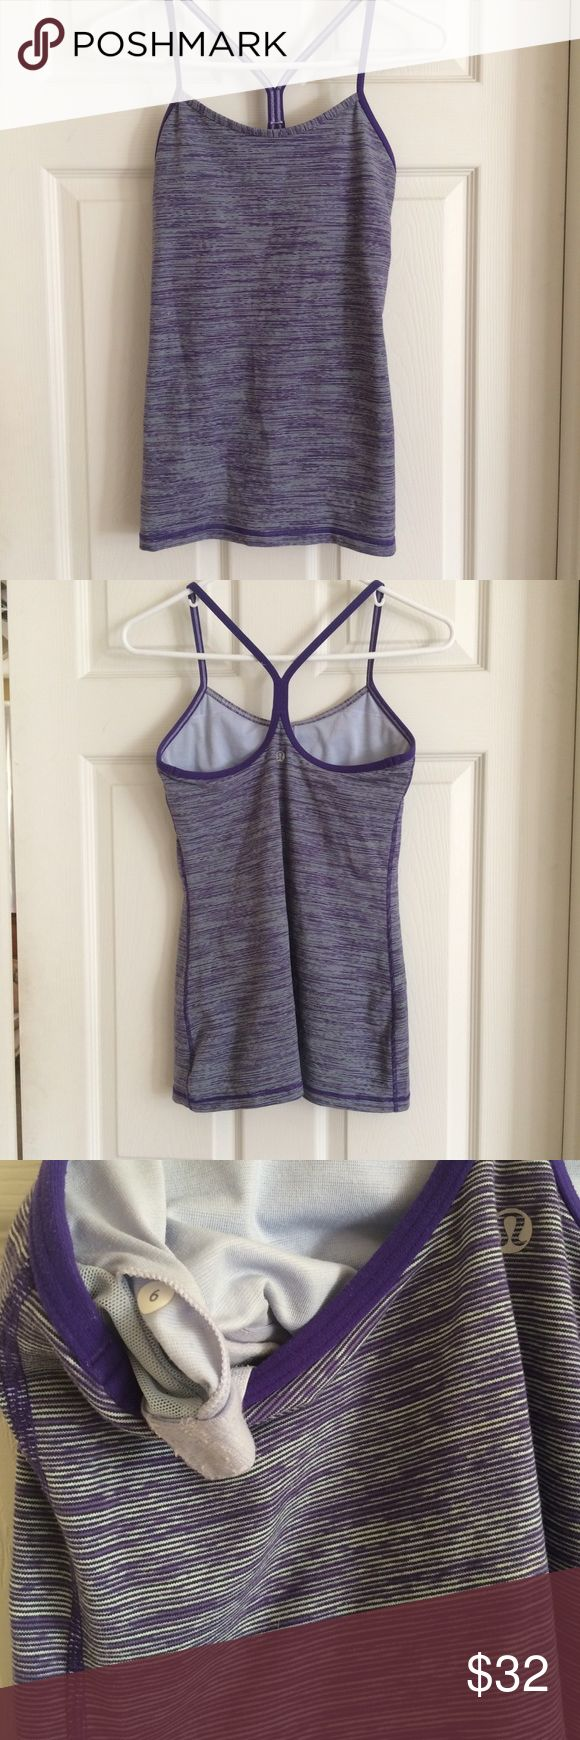 Lululemon Power Y Tank 🌷welcome spring🌷 Pretty in purple! Lululemon Power Y space dye tank with built in bra (no inserts). Color: bruised purple. Worn 3-4 times and hand washed. VGUC. No rip tag. 🌷 Pair with my other purple lulu tank for special bundle pricing. Stock photo from lulufanatics.com lululemon athletica Tops Tank Tops